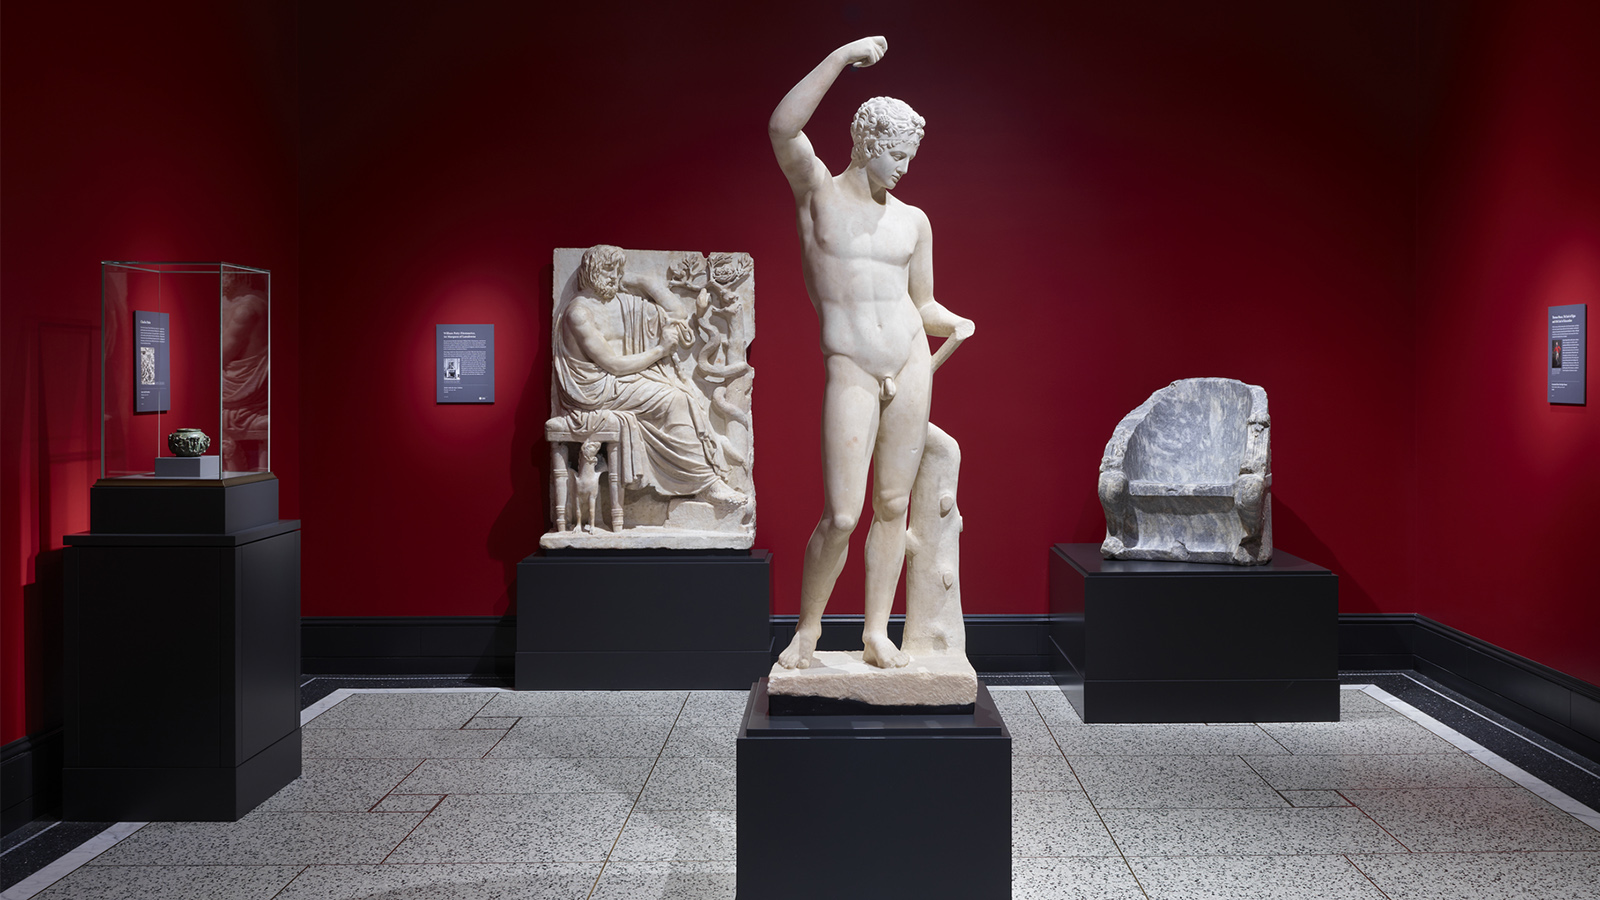 A vitrine holding a small work of art and three large marble sculptures, including a throne, satyr, and relief dominate a small room with dramatic red walls.